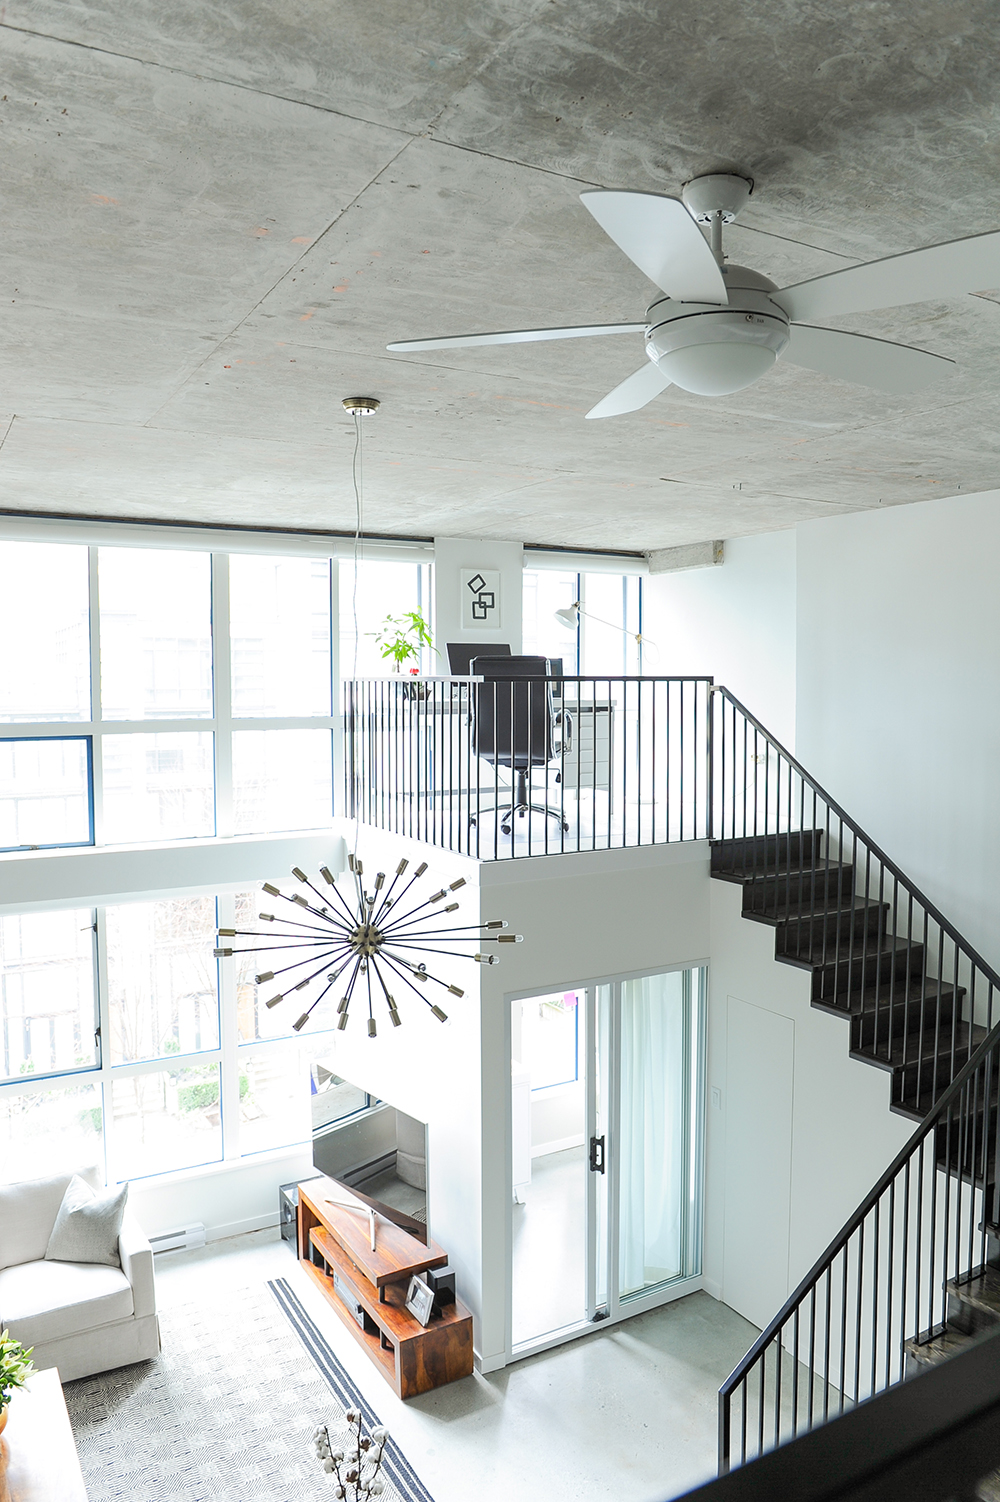 A spacious sunny loft space with white rooms and a black staircase leading from the living room up to the office space.